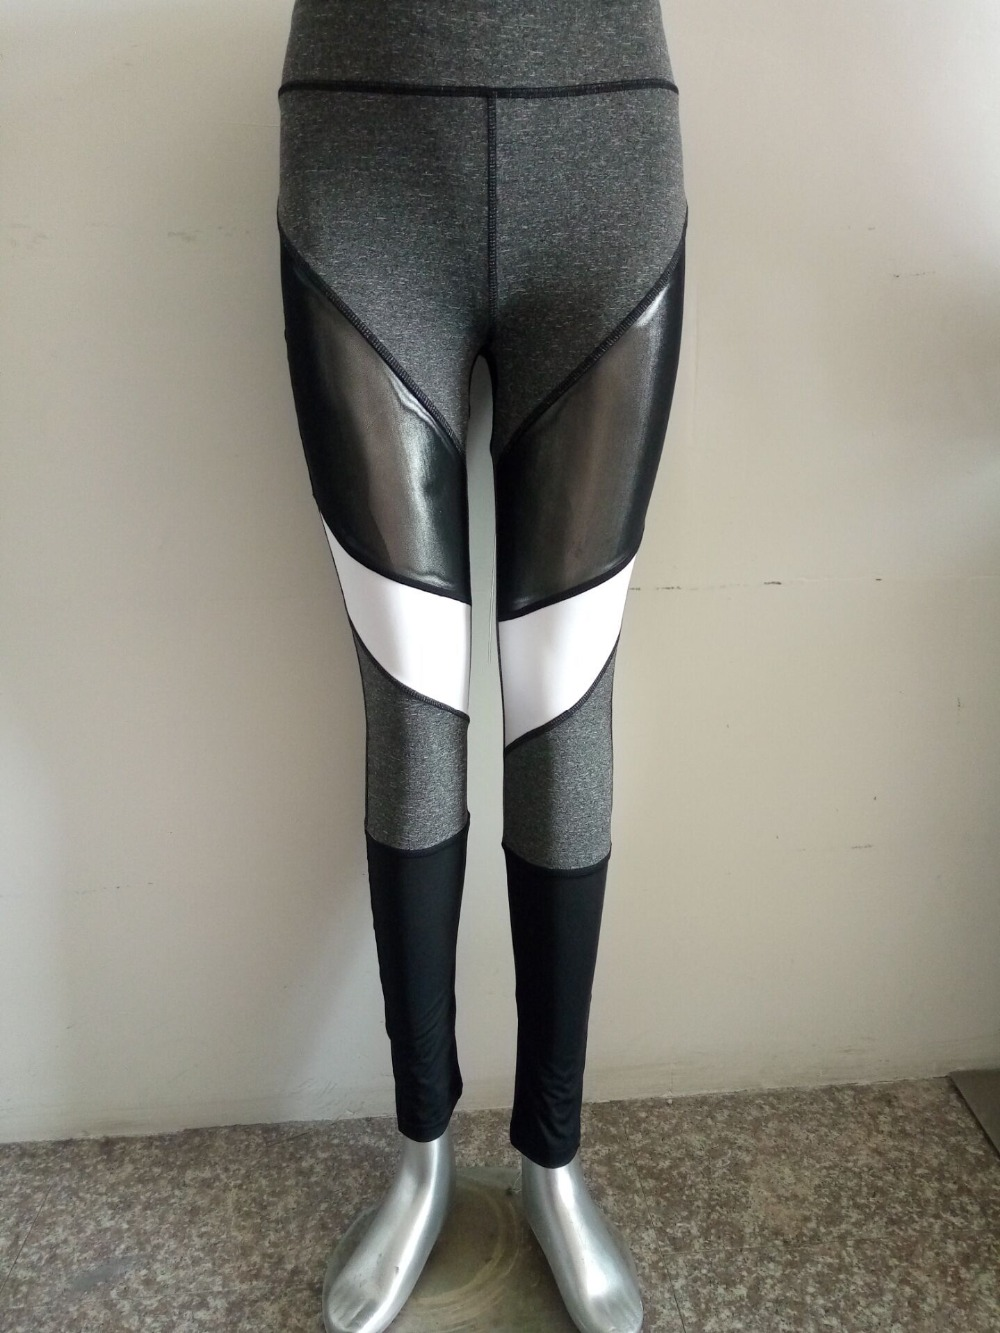 Kvinnor Fitness Leggings Svart Casual Leggins Workout Byxor Mesh - Damkläder - Foto 5